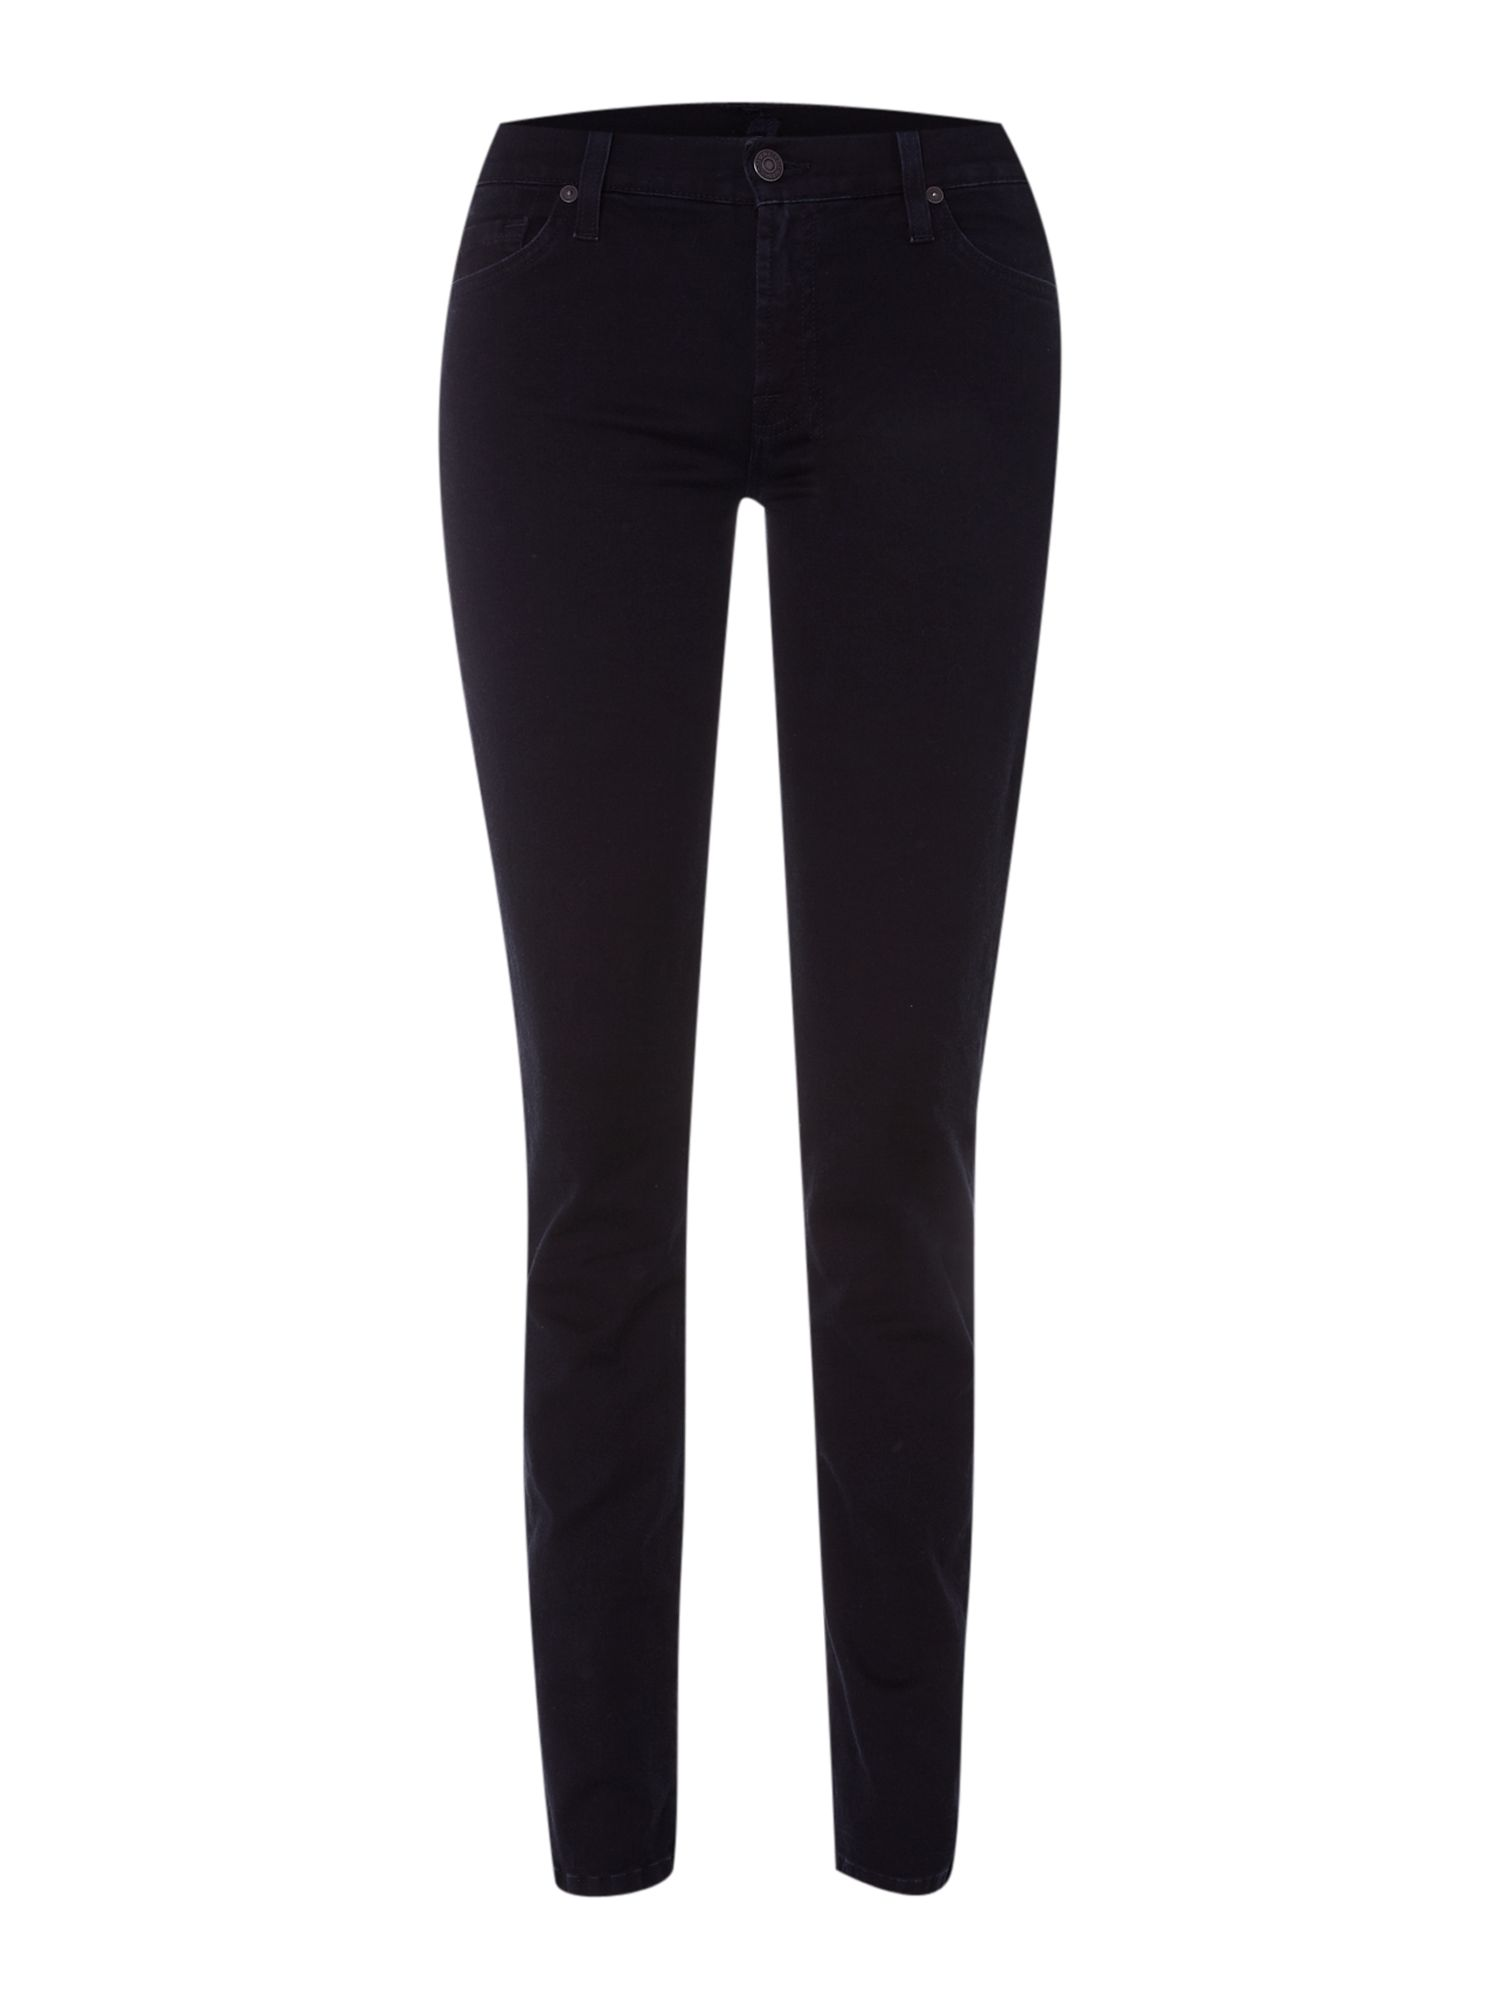 The Skinny gummy jeans in Blue Black